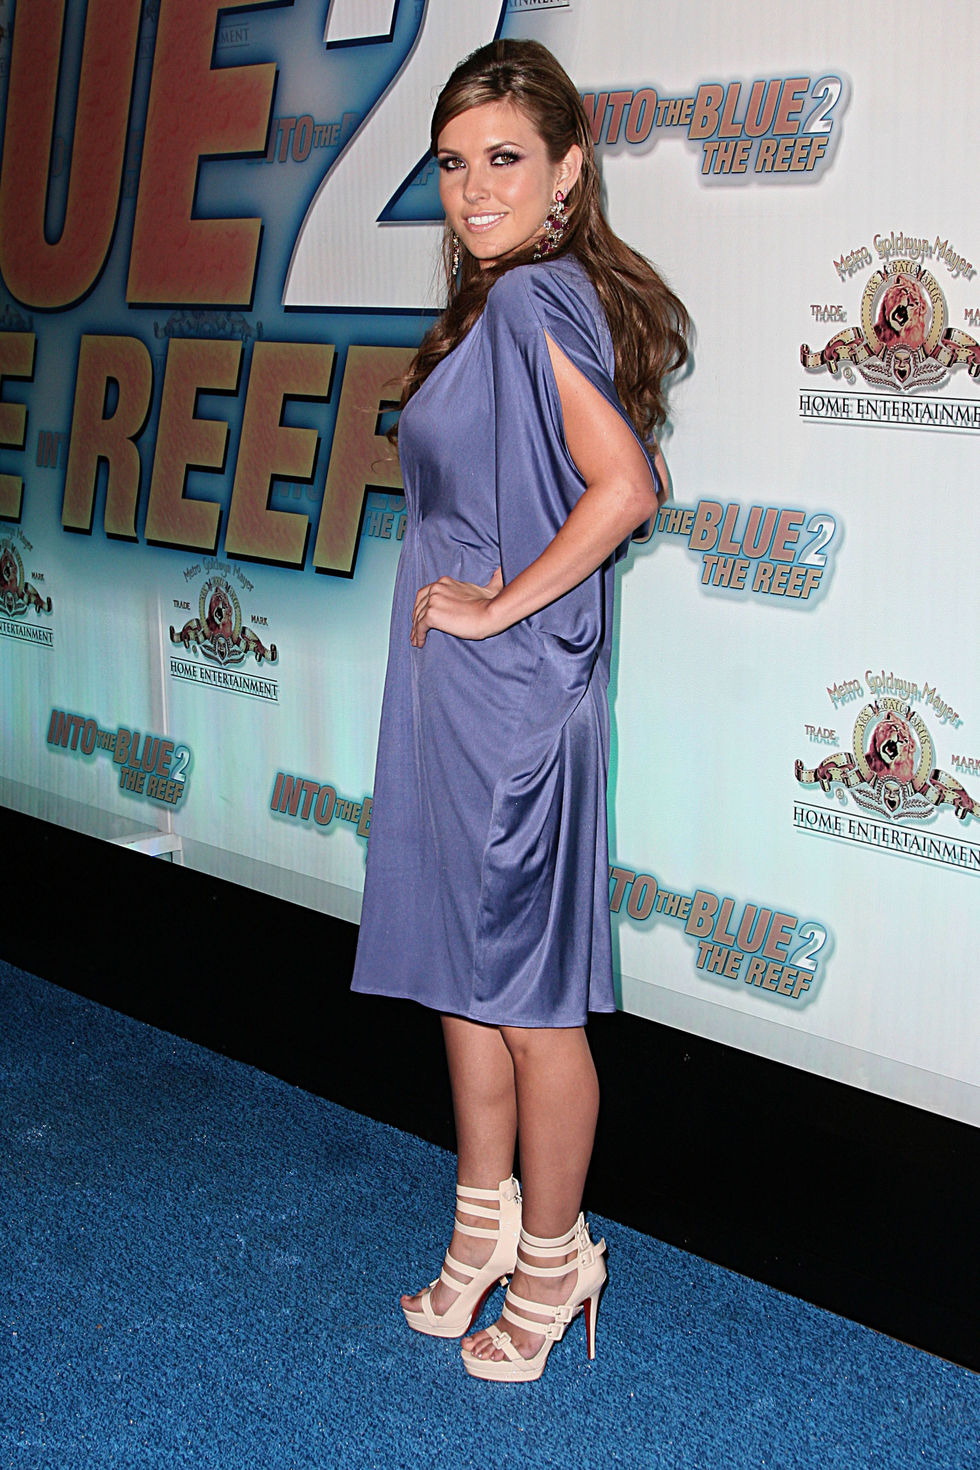 audrina-patridge-into-the-blue-2-the-reef-premiere-in-beverly-hills-01